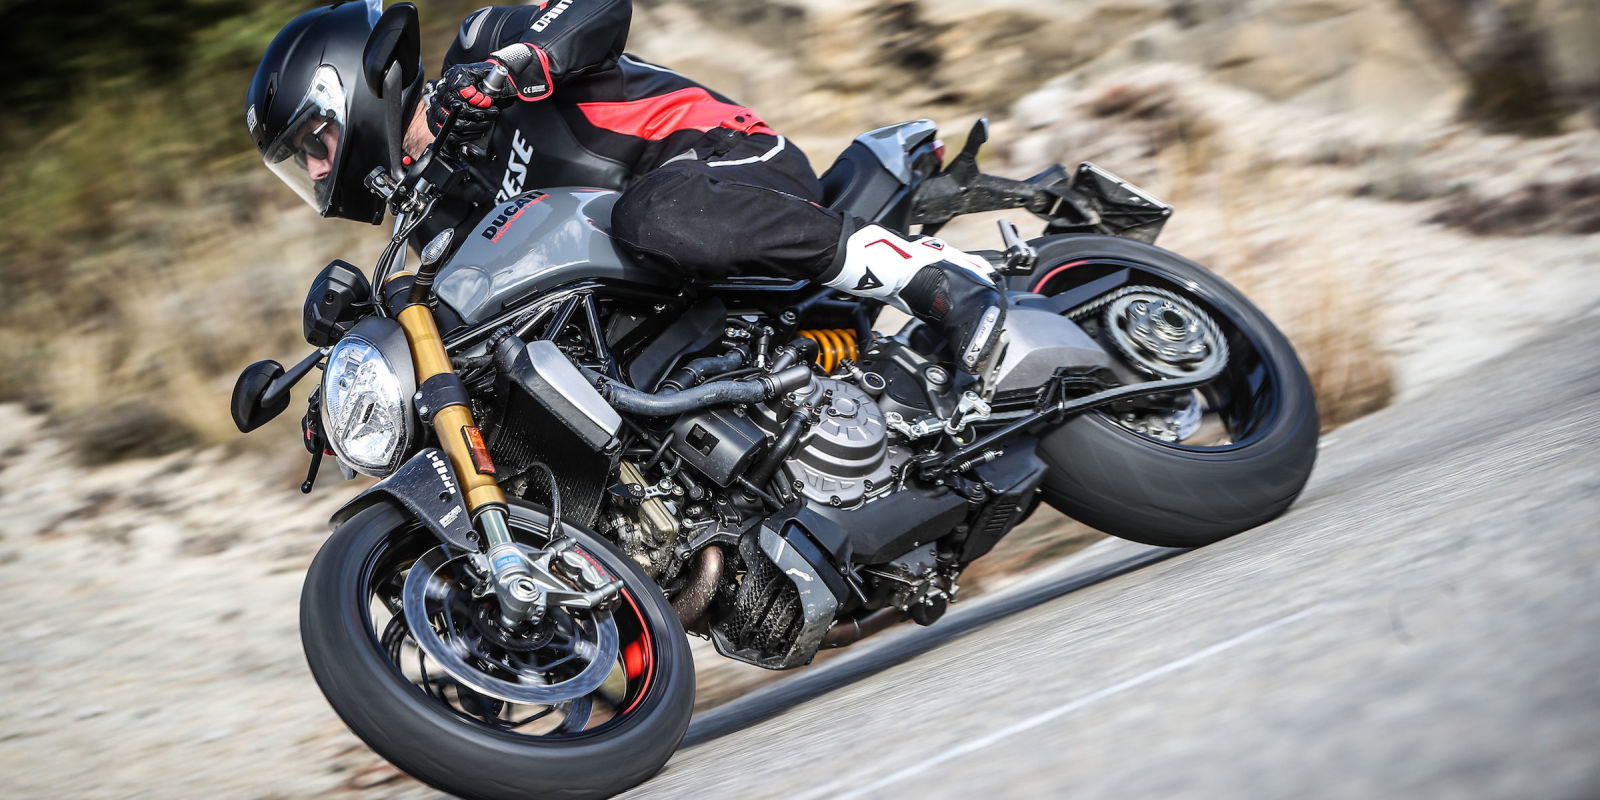 The 2017 Ducati Monster Is All The Street Bike You Need